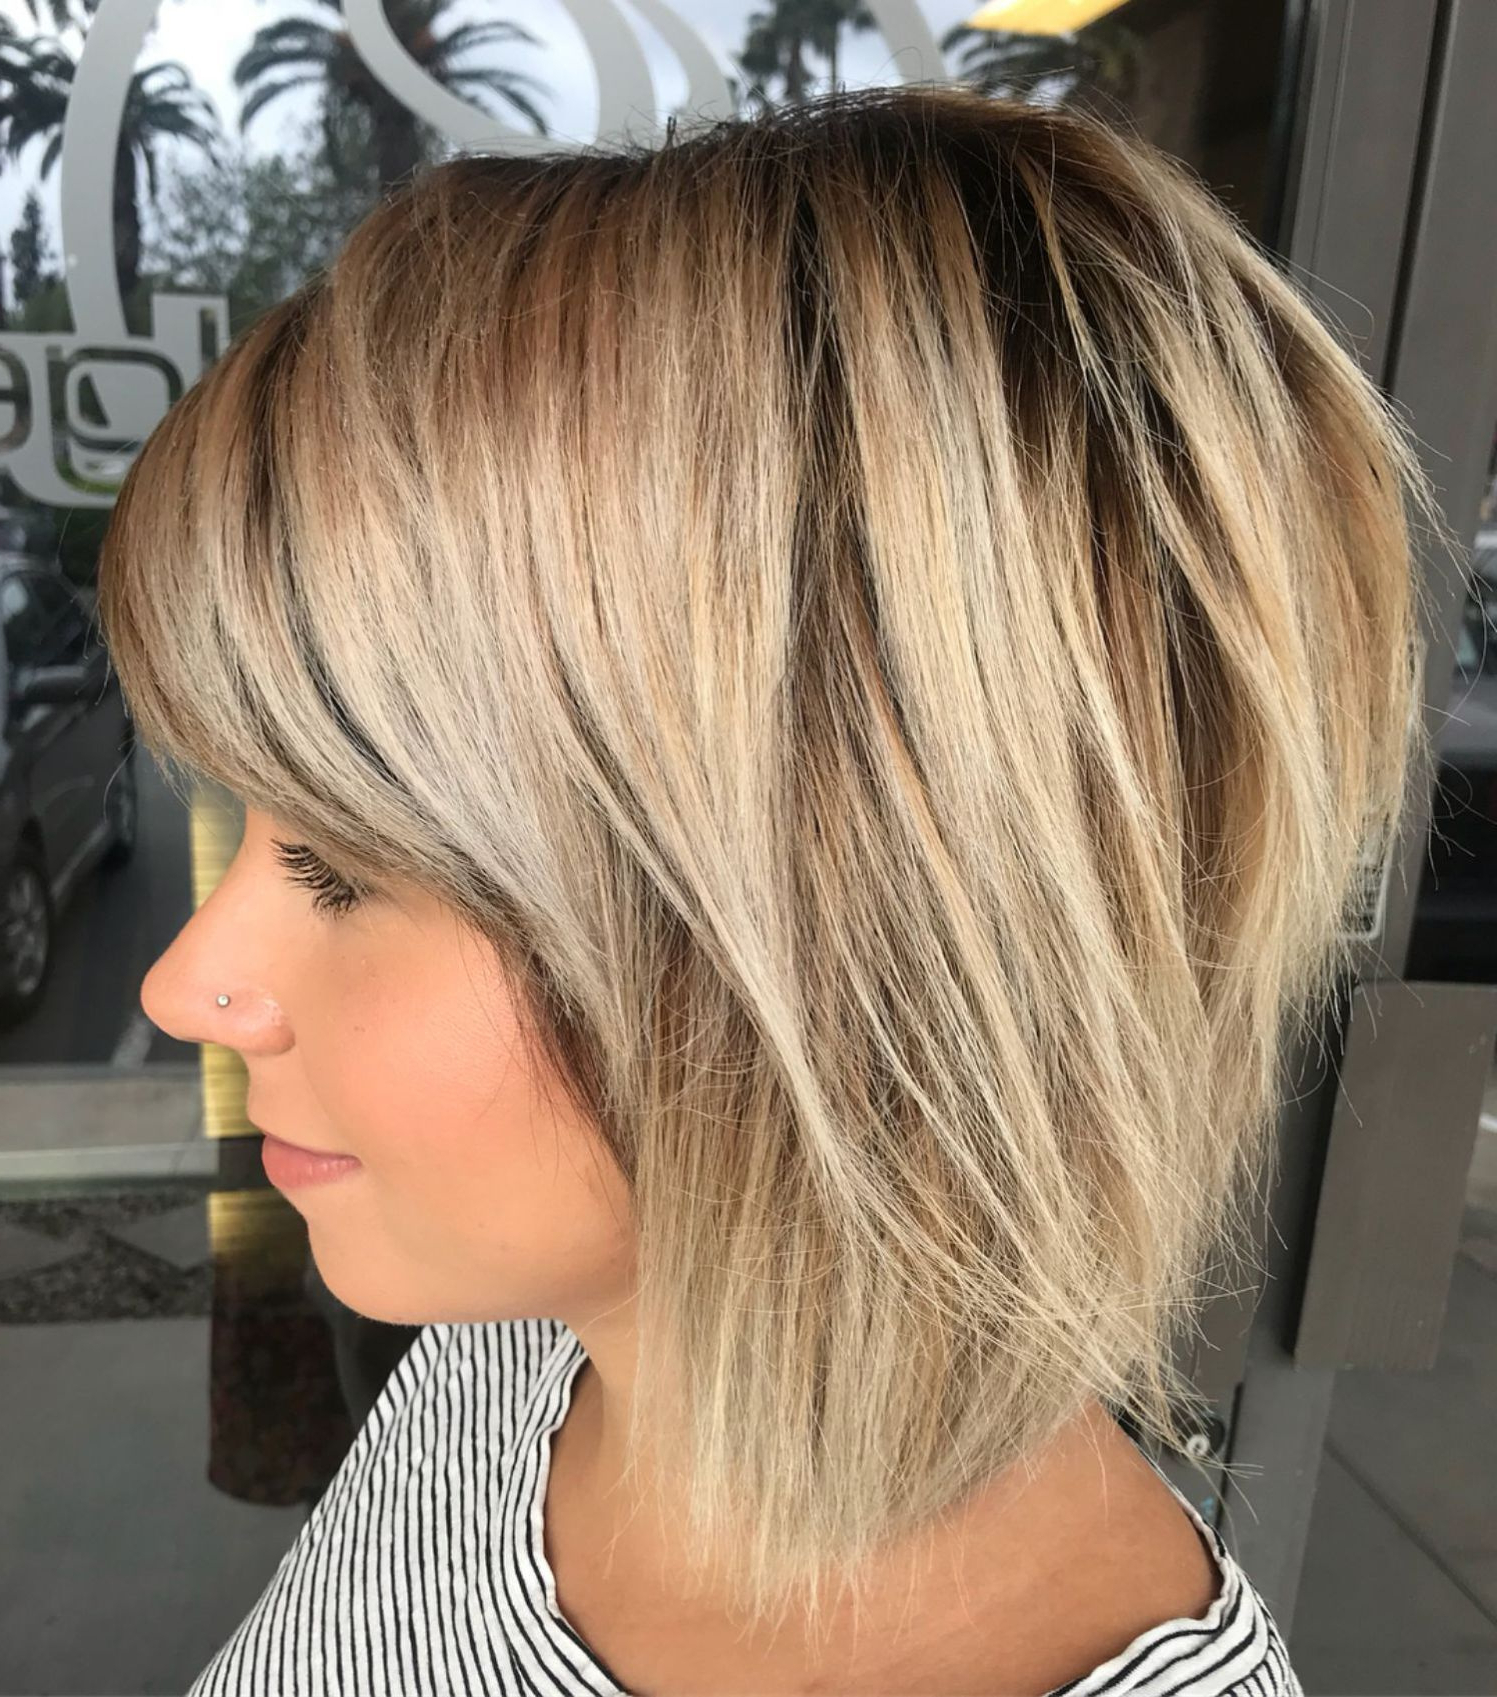 Hairstyles : Razored Blonde Bob Delightful 60 Beautiful And Regarding Widely Used Razored Blonde Bob Haircuts With Bangs (View 5 of 20)